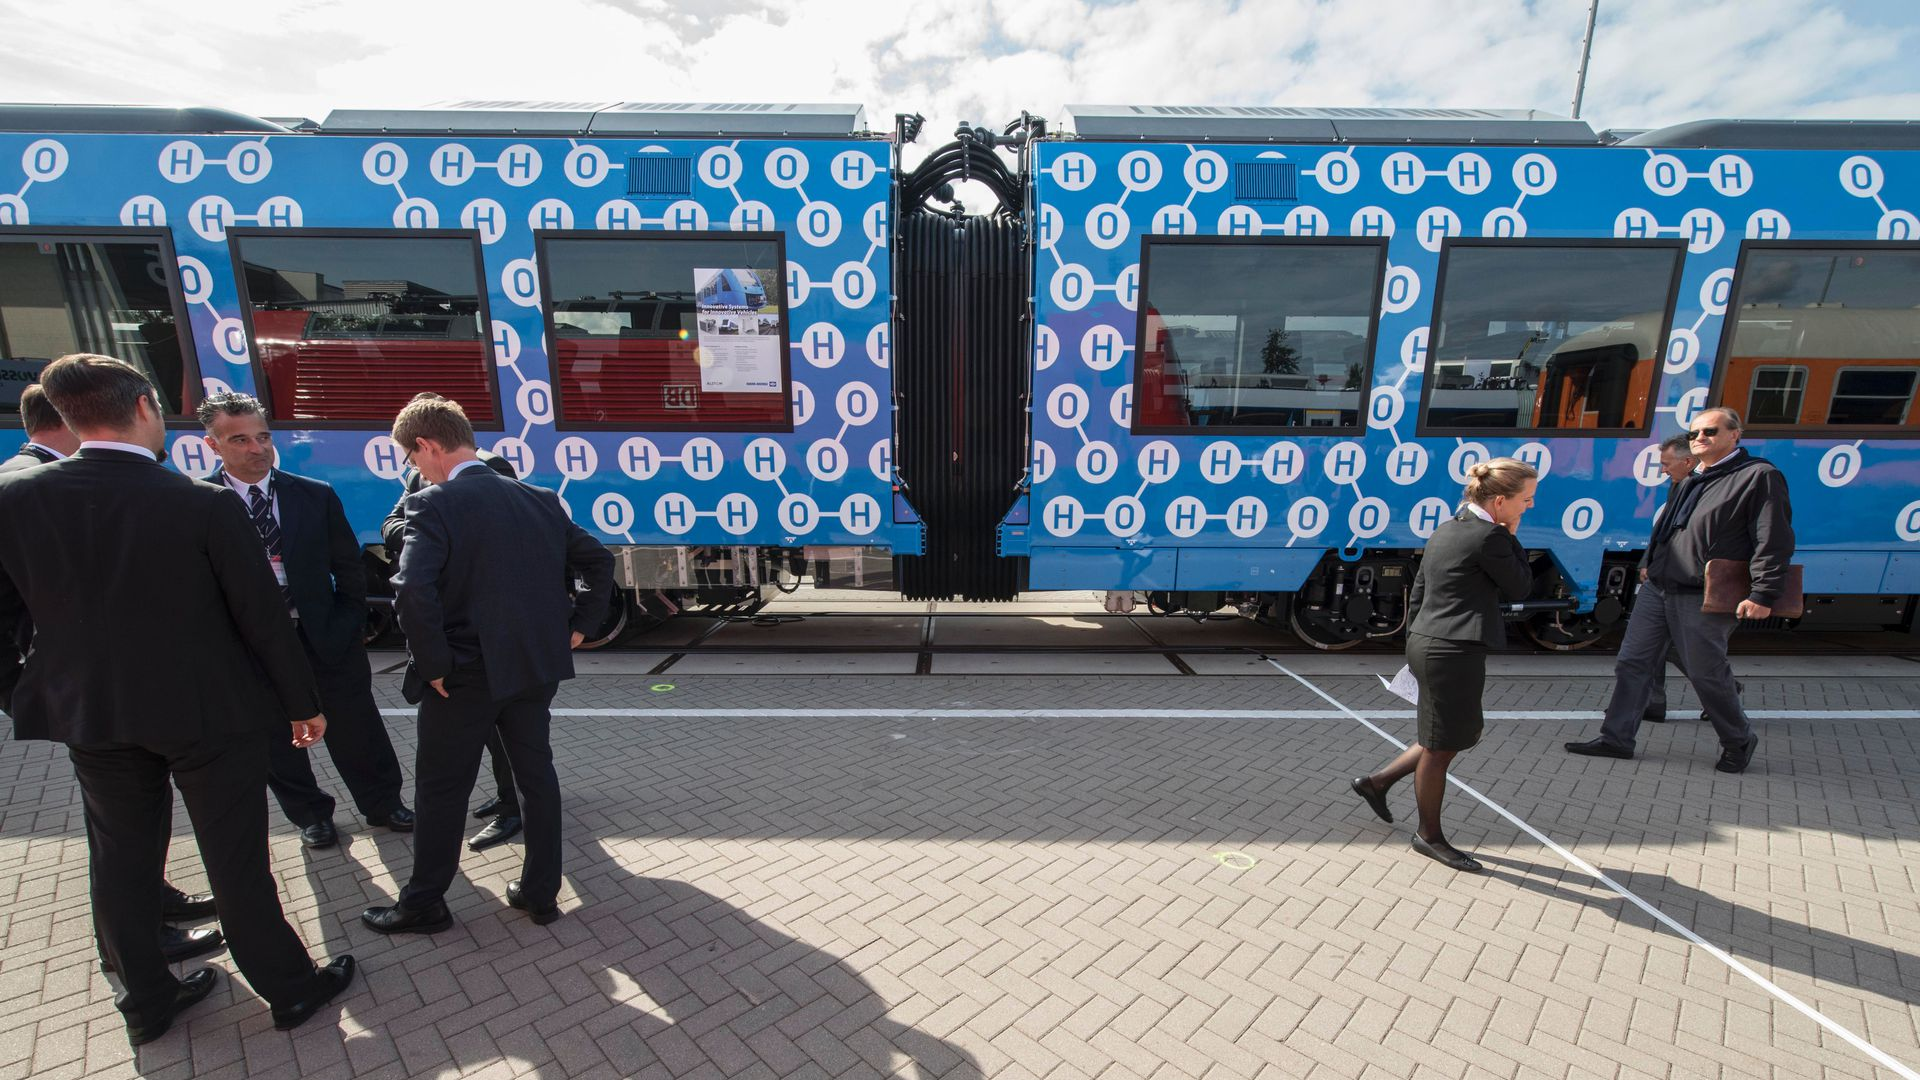 The Coradia iLint train, a CO2-emission-free regional train developed by French transport giant Alstom, is on display